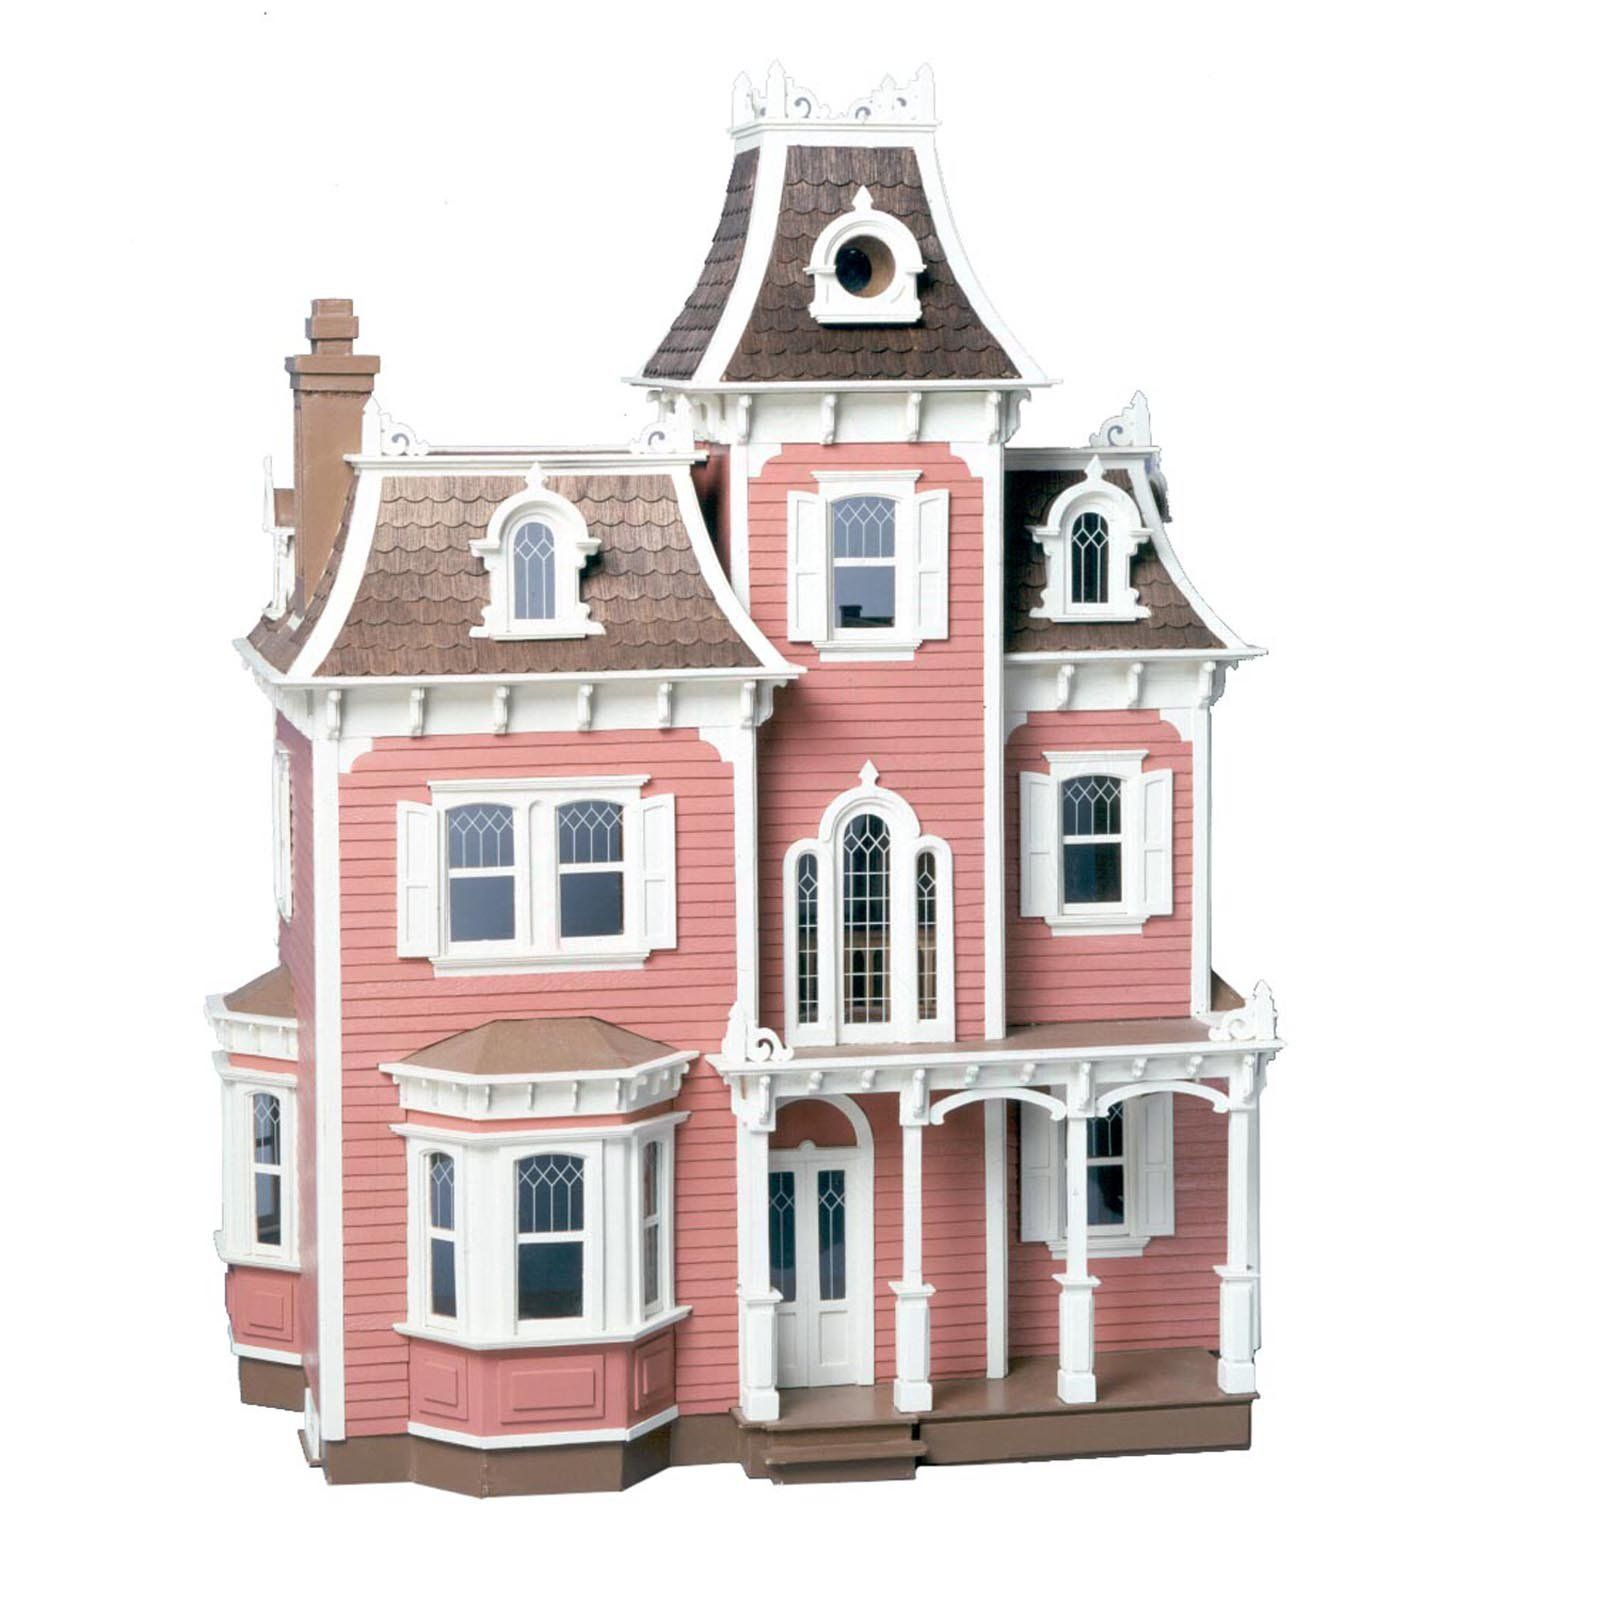 Greenleaf Beacon Hill Dollhouse Kit - 1 Inch Scale - Dignified and grand, the Greenleaf Beacon Hill Dollhouse Kit - 1 Inch Scale is all about the details. Crafted of plywood, its sophisticated exterior i...